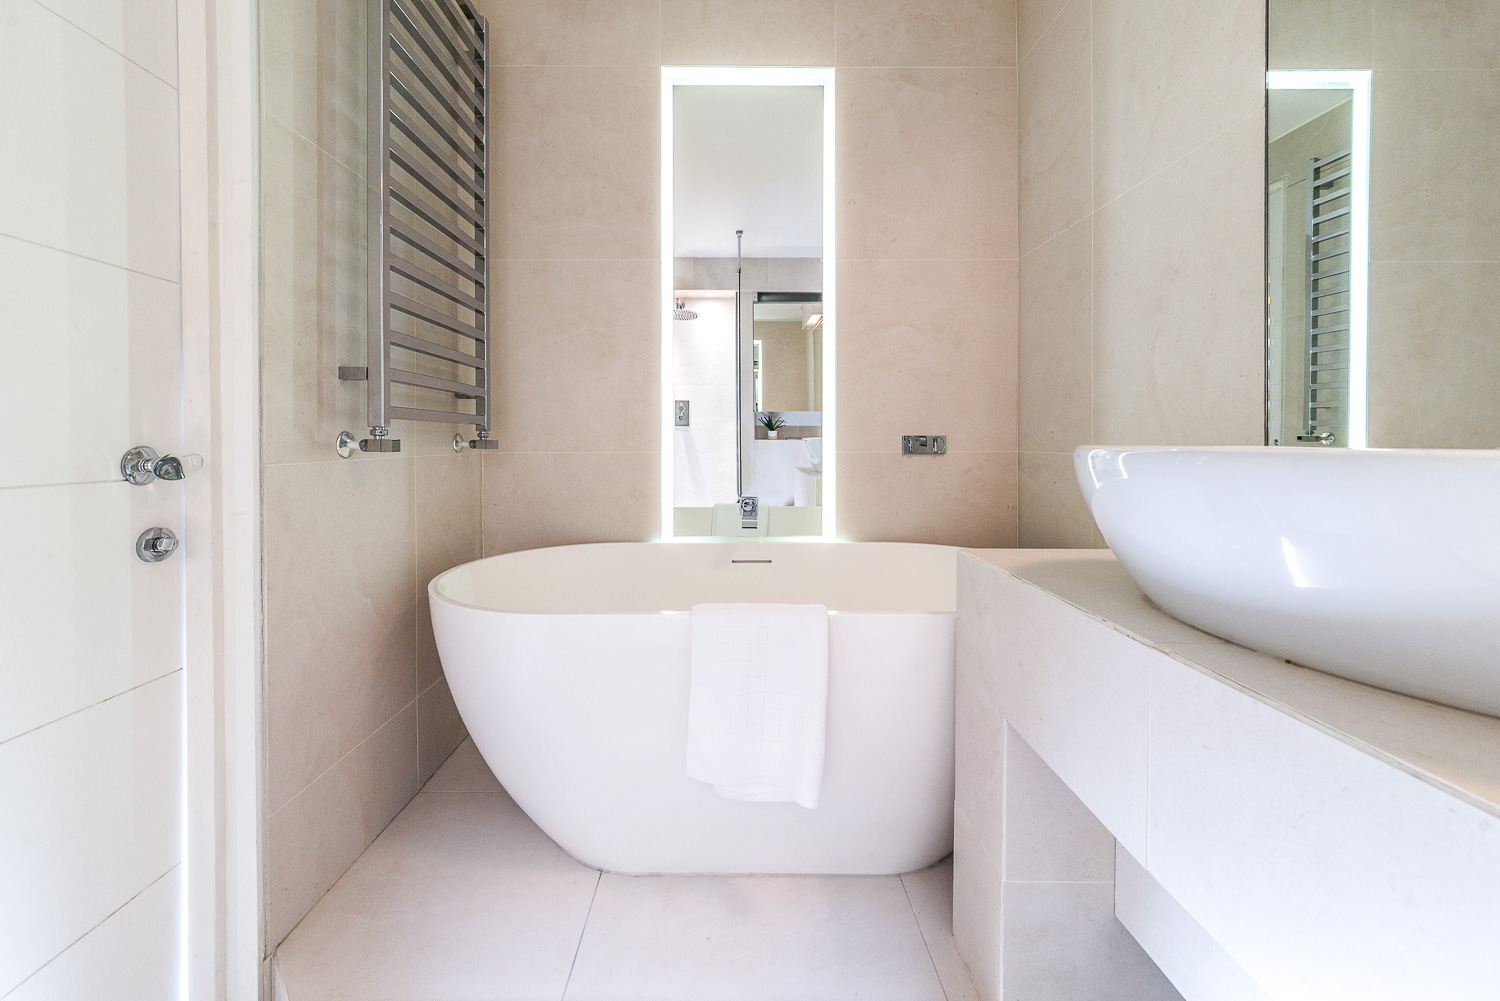 Lovelydays luxury service apartment rental - London - Fitzrovia - Foley Street II - Lovelysuite - 2 bedrooms - 2 bathrooms - Beautiful bathtub - d6b59f97002b - Lovelydays